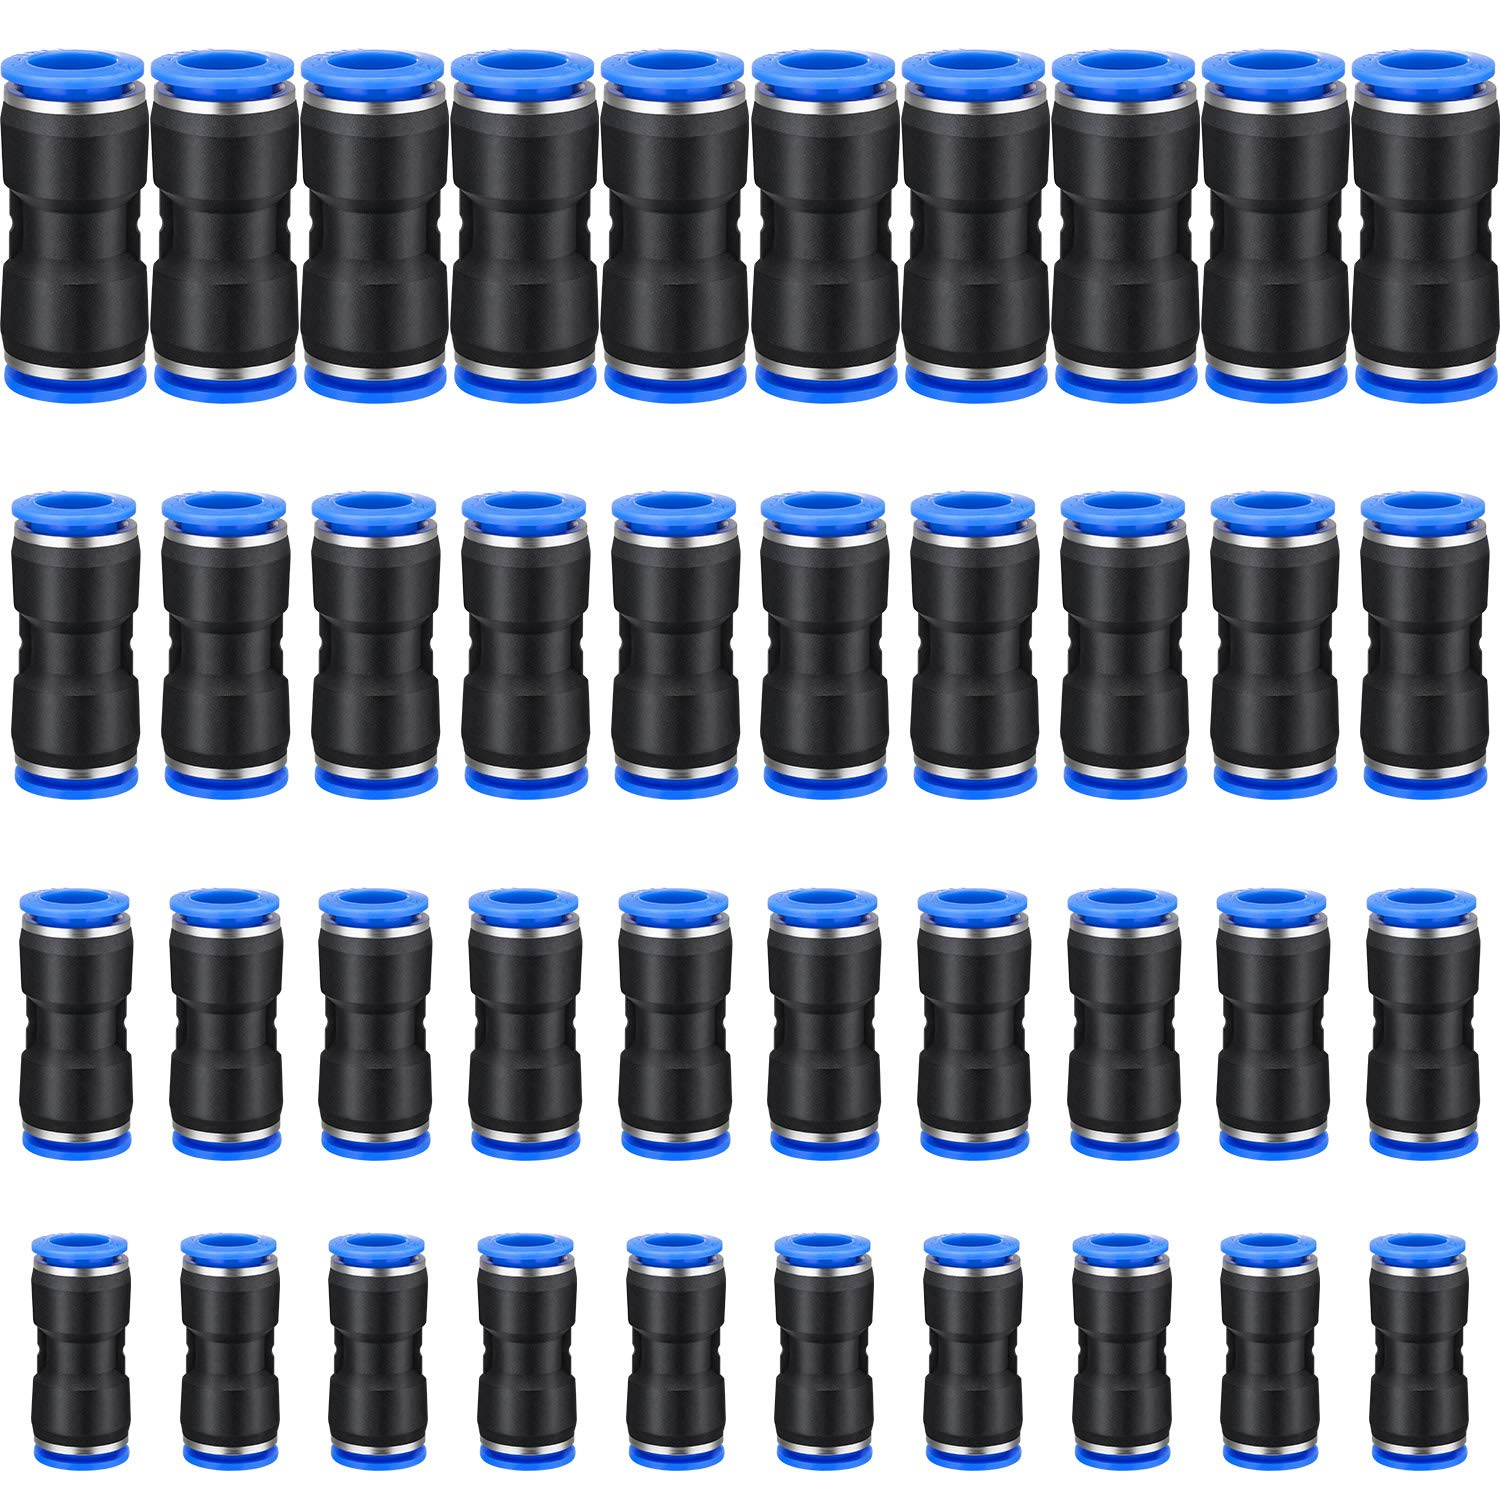 Two Way YOTINO 30 pcs Straight Push Connectors One Touch Straight Fittings Plastic Quick Release Connectors for Air Line Water /& Fuel Hoses of 1//4 5//16 3//8 Tube